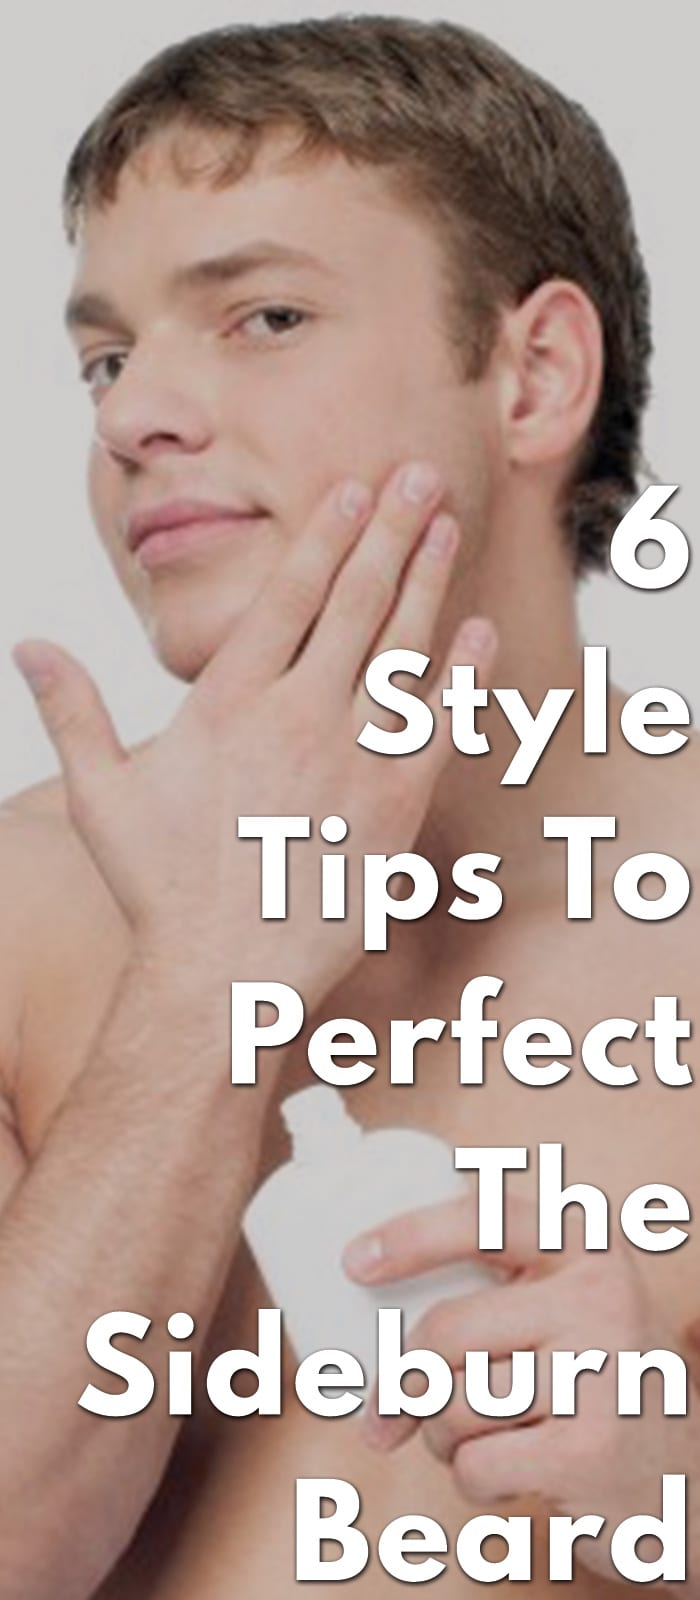 6-Style-Tips-To-Perfect-The-Sideburn-Beard.